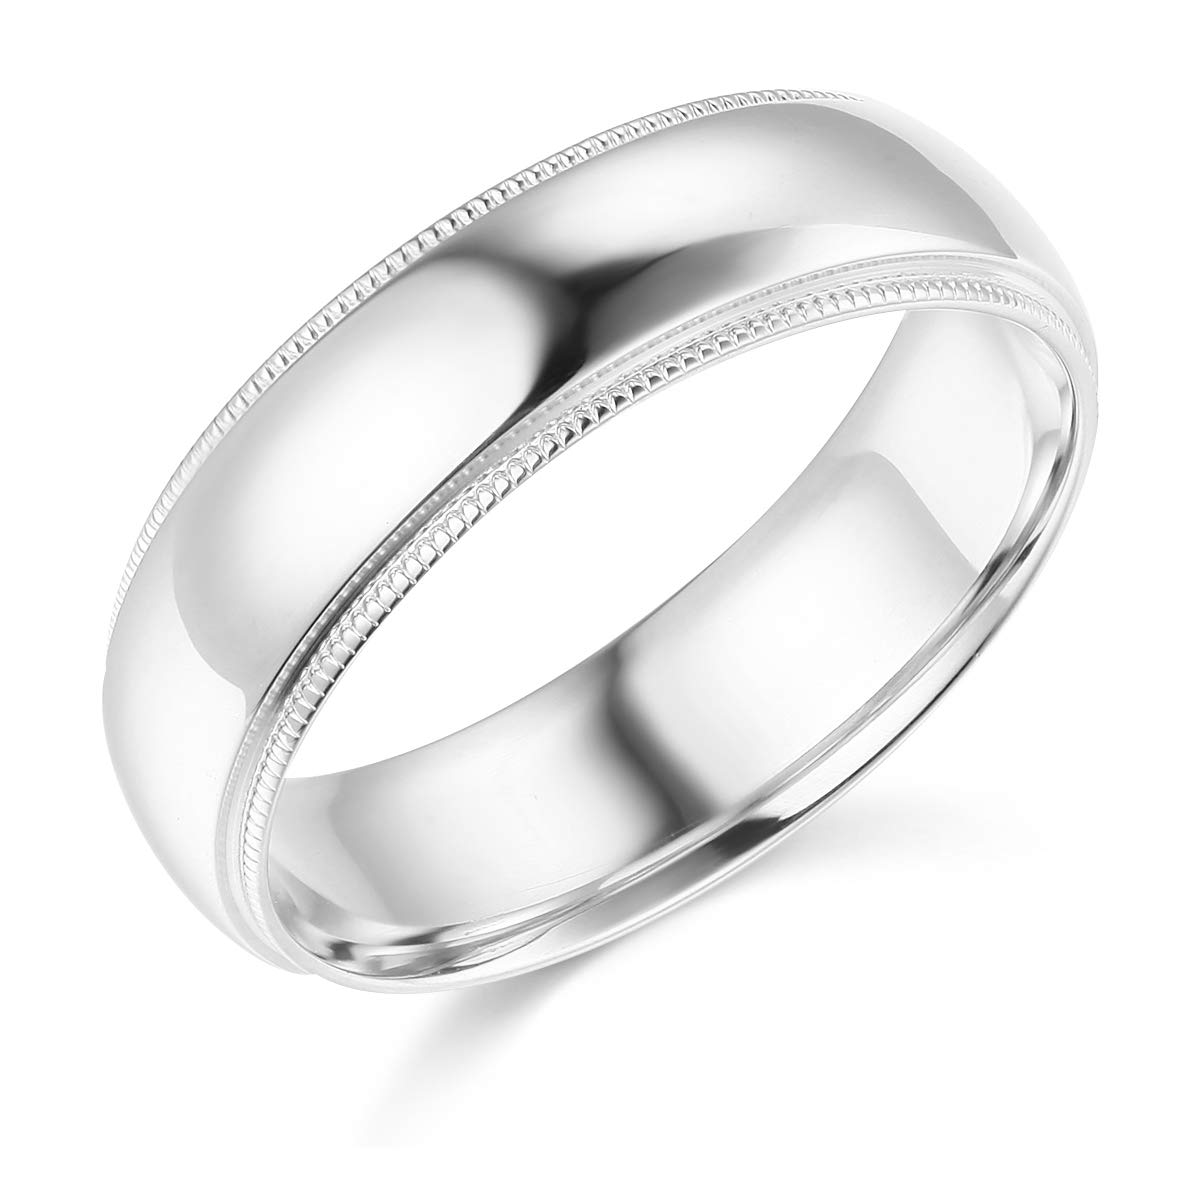 Wellingsale Mens 14k White Gold Solid 6mm CLASSIC FIT Milgrain Traditional Wedding Band Ring - Size 11.5